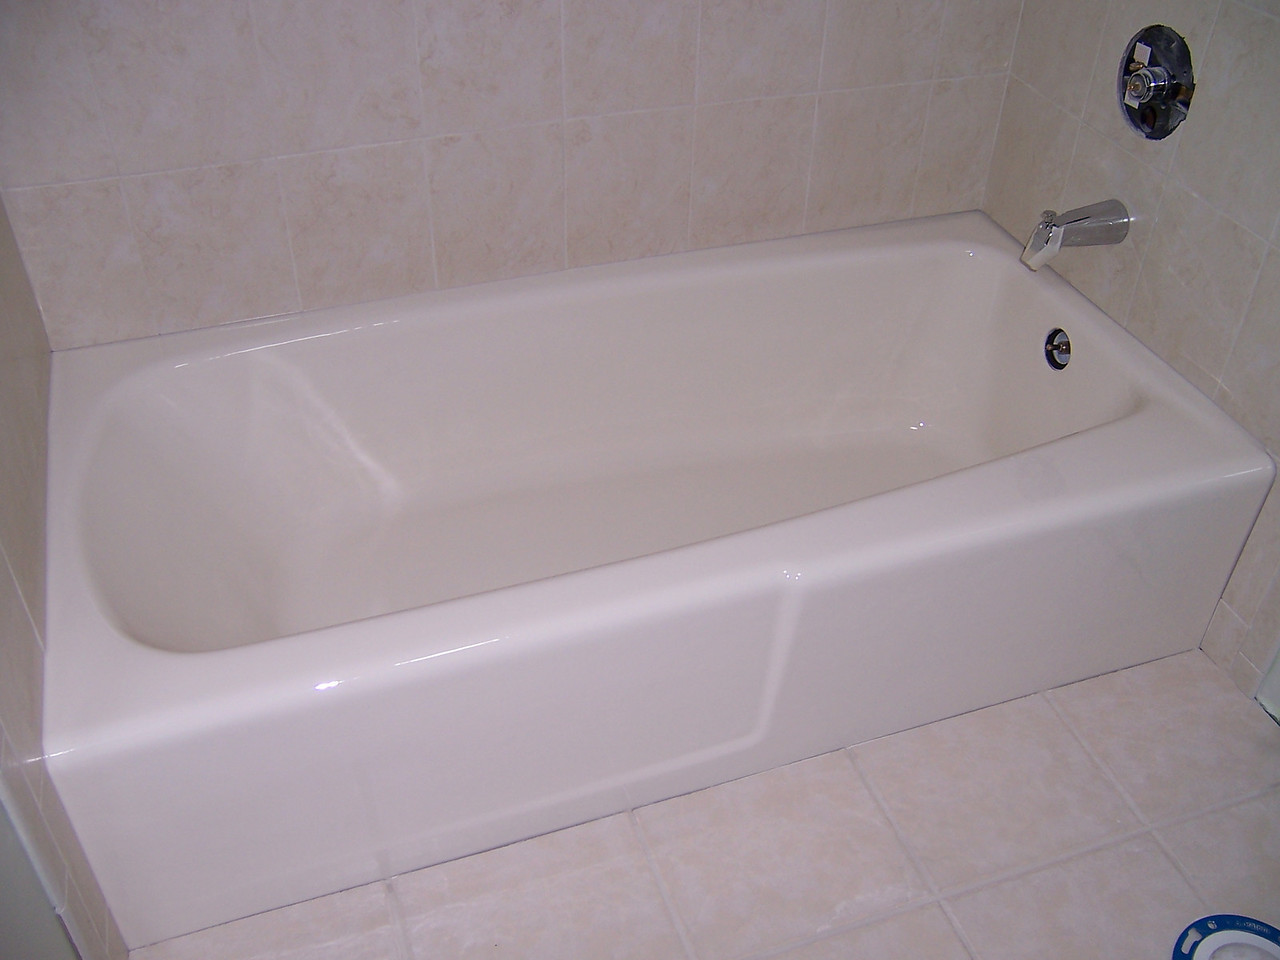 Tubs can be refinished to match new tile, a toilet or updated decor.